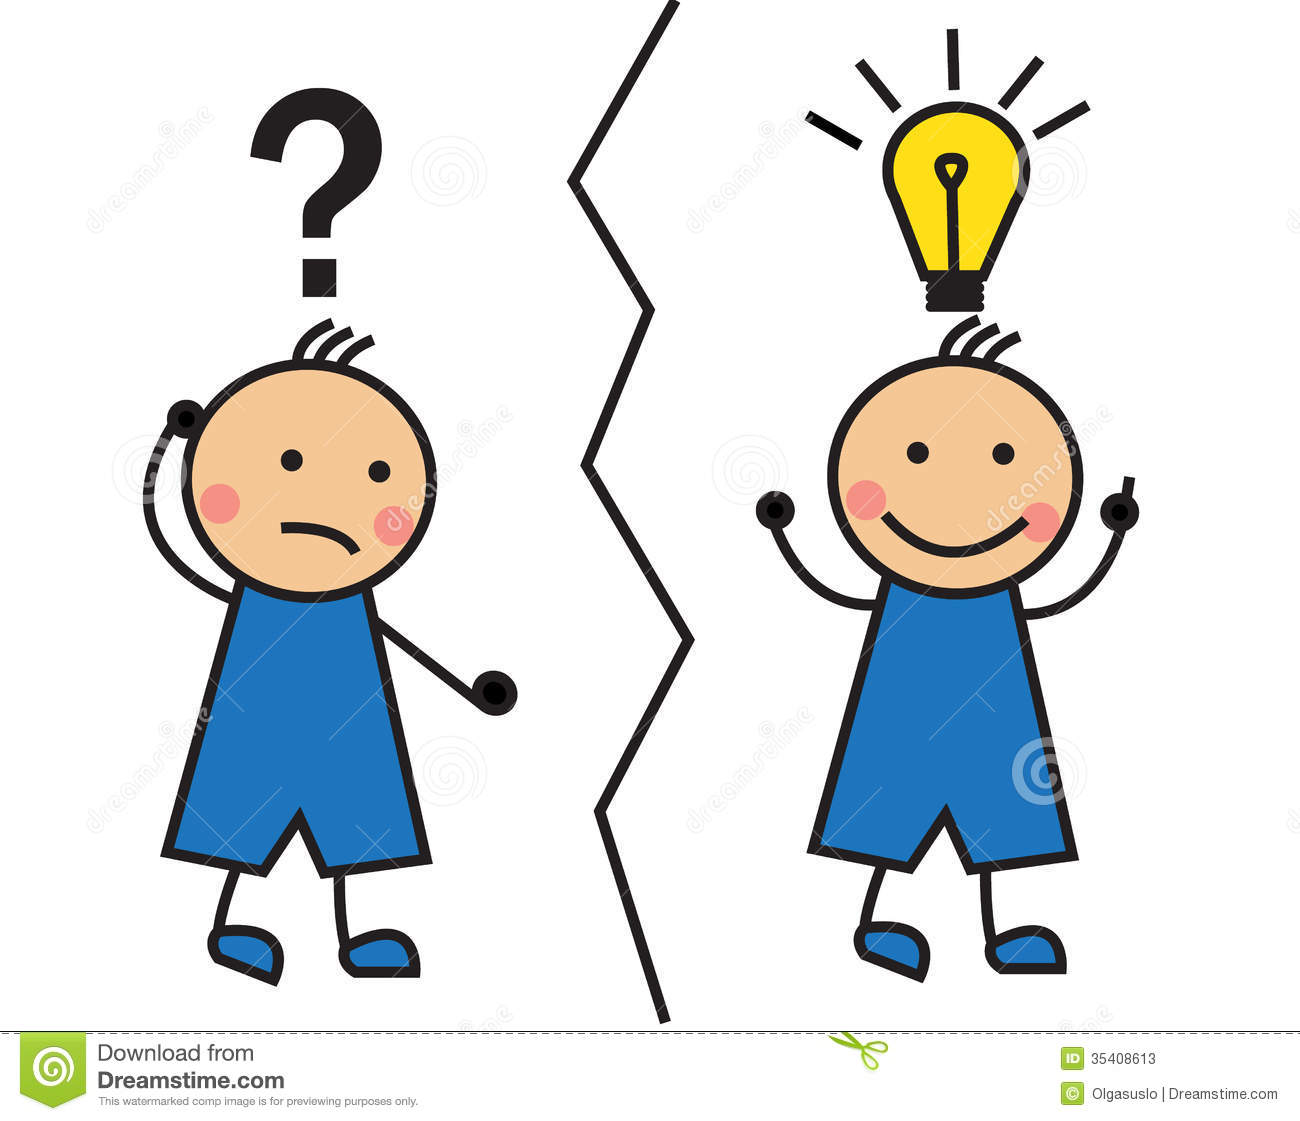 cartoon man looking solution comes to mind idea question mark light bulb over his head 35408613 - NHỮNG TỪ DỄ GÂY NHẦM LẪN TRONG TIẾNG ANH